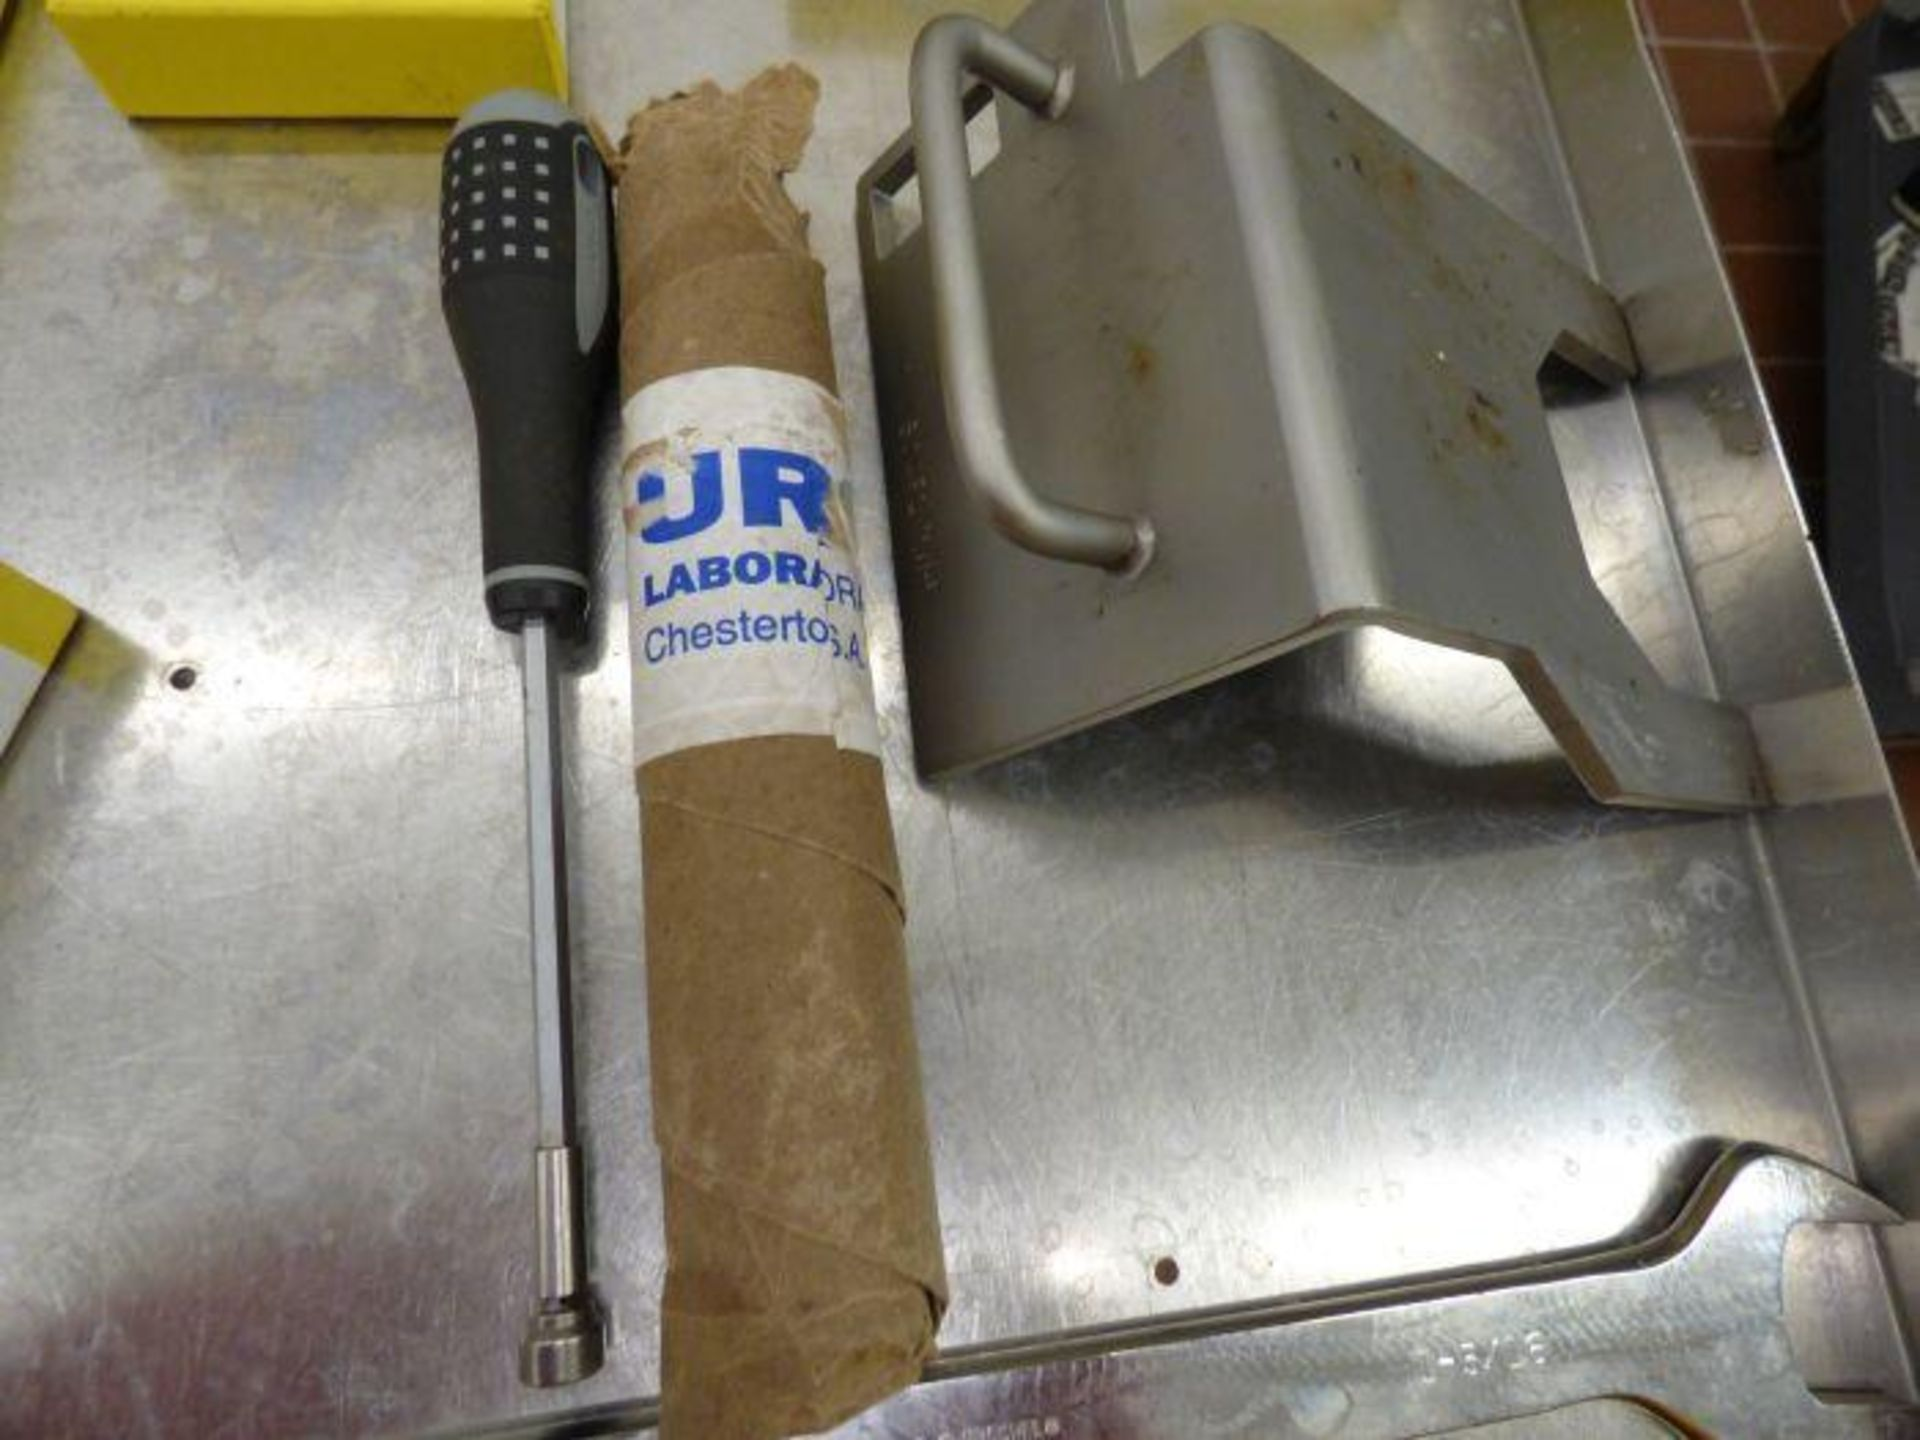 2015 Urshel Stainless Steel Dicer with Spare Parts - Image 15 of 25